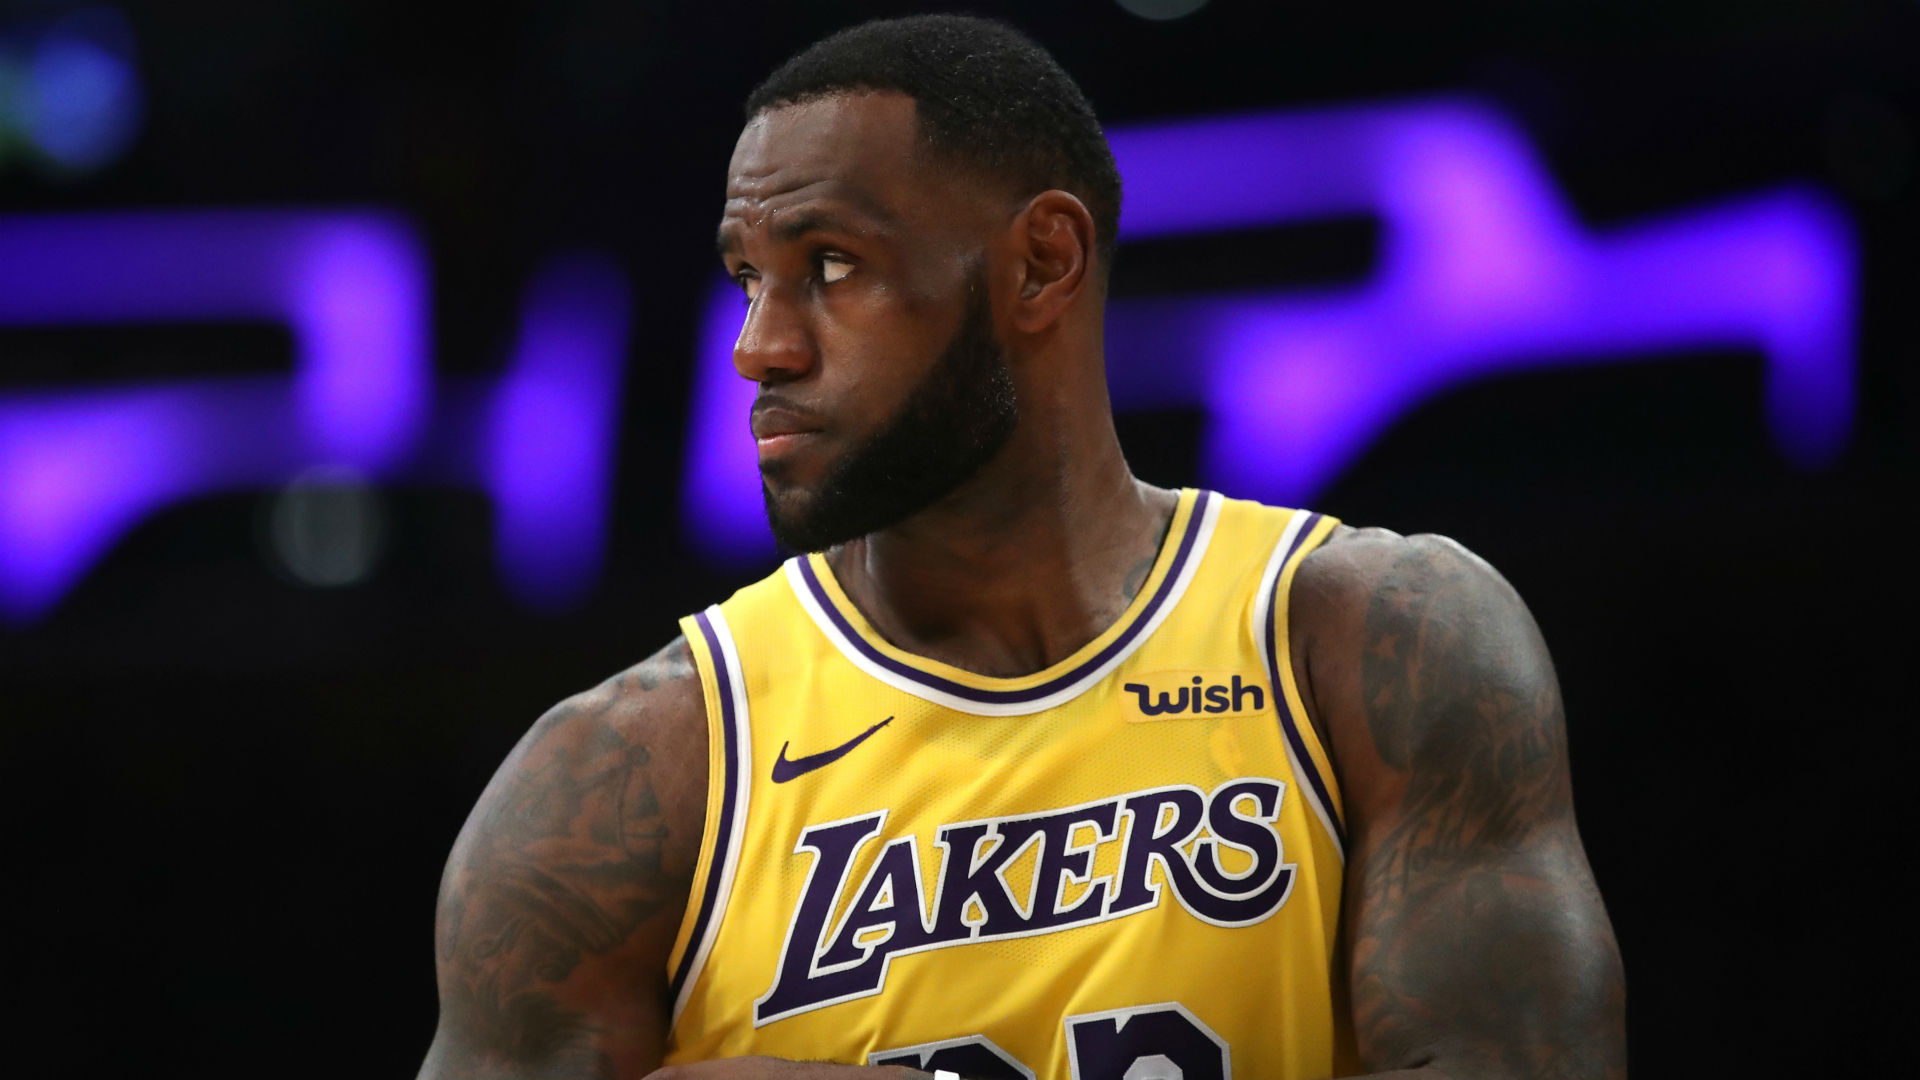 While LeBron James believes in free speech, the four-time MVP was not happy with Daryl Morey's comments.